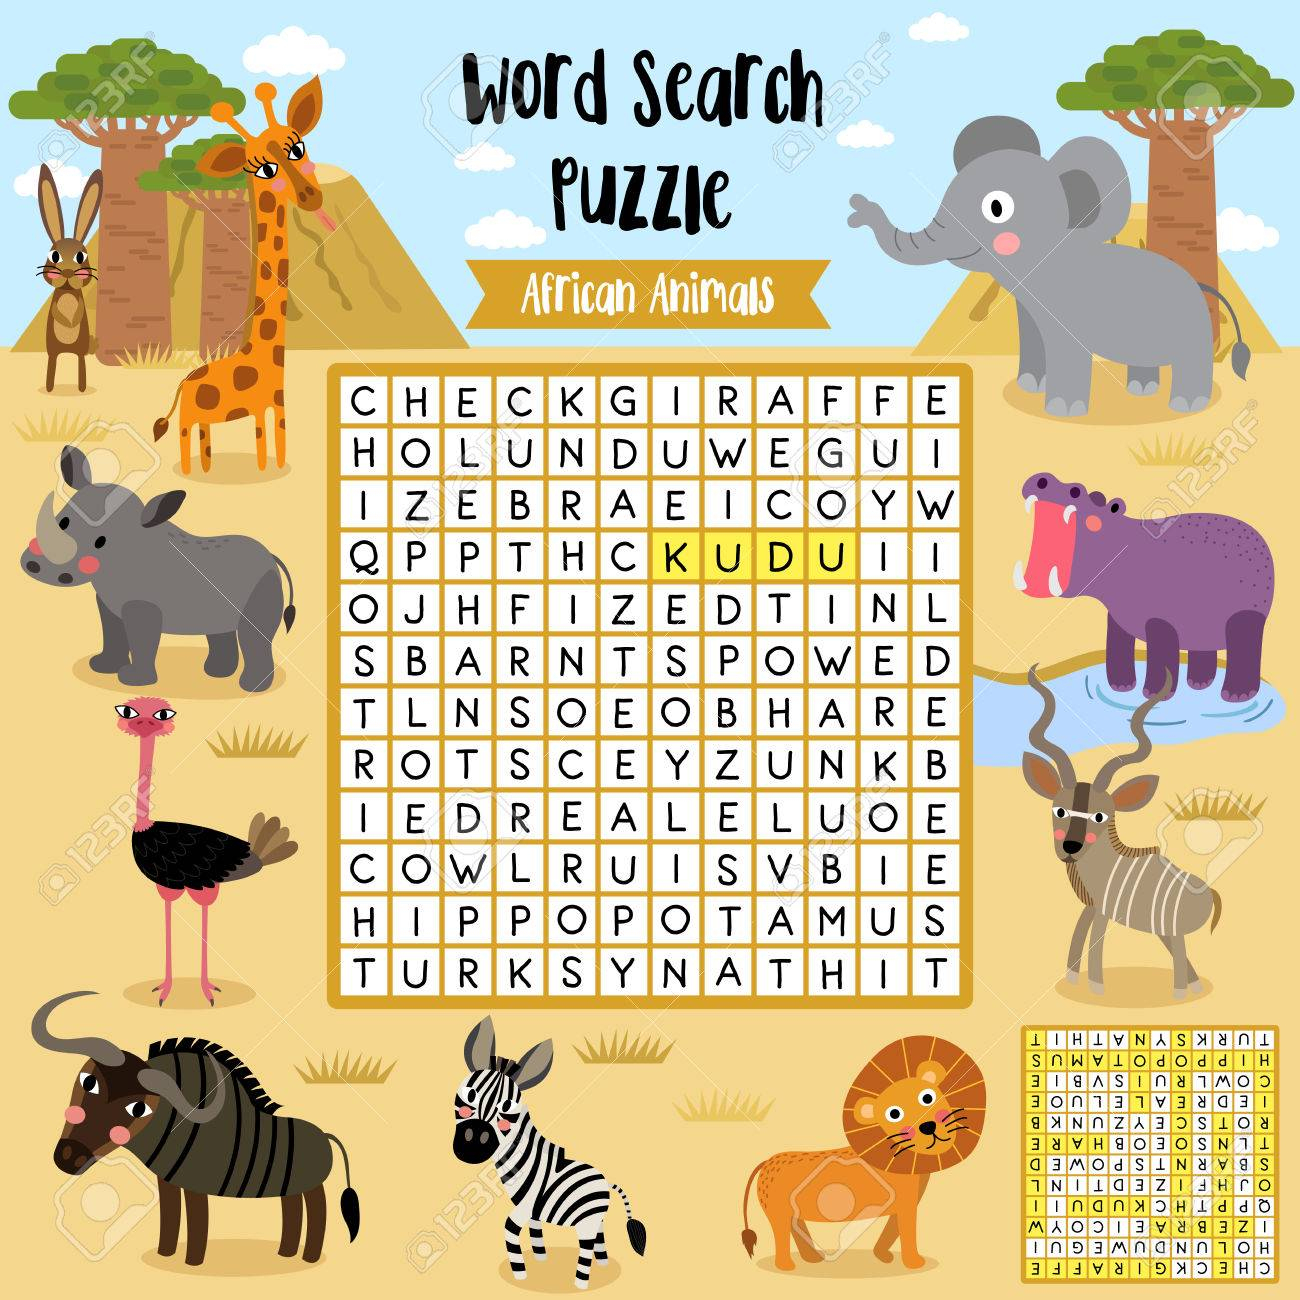 Words Search Puzzle Game Of African Animals For Preschool Kids - Printable Animal Puzzle